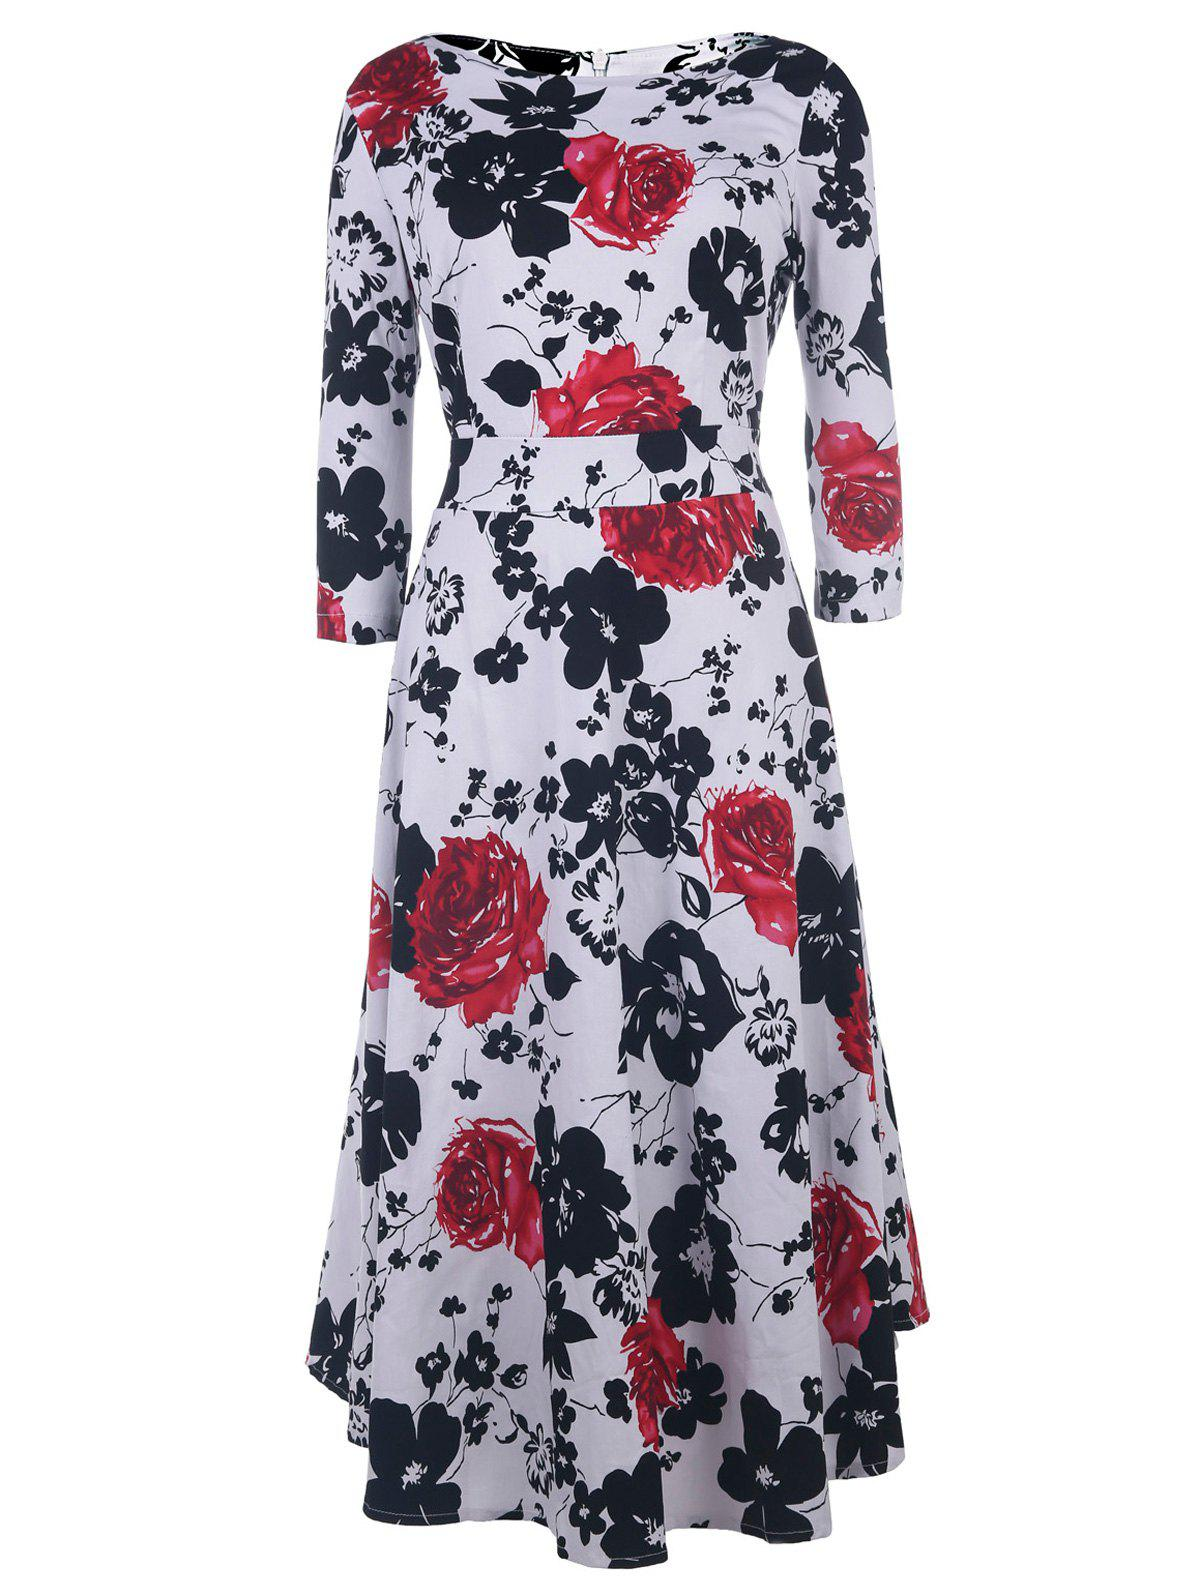 Vintage Style 1/2 Sleeve Round Neck Floral Print Women's Dress